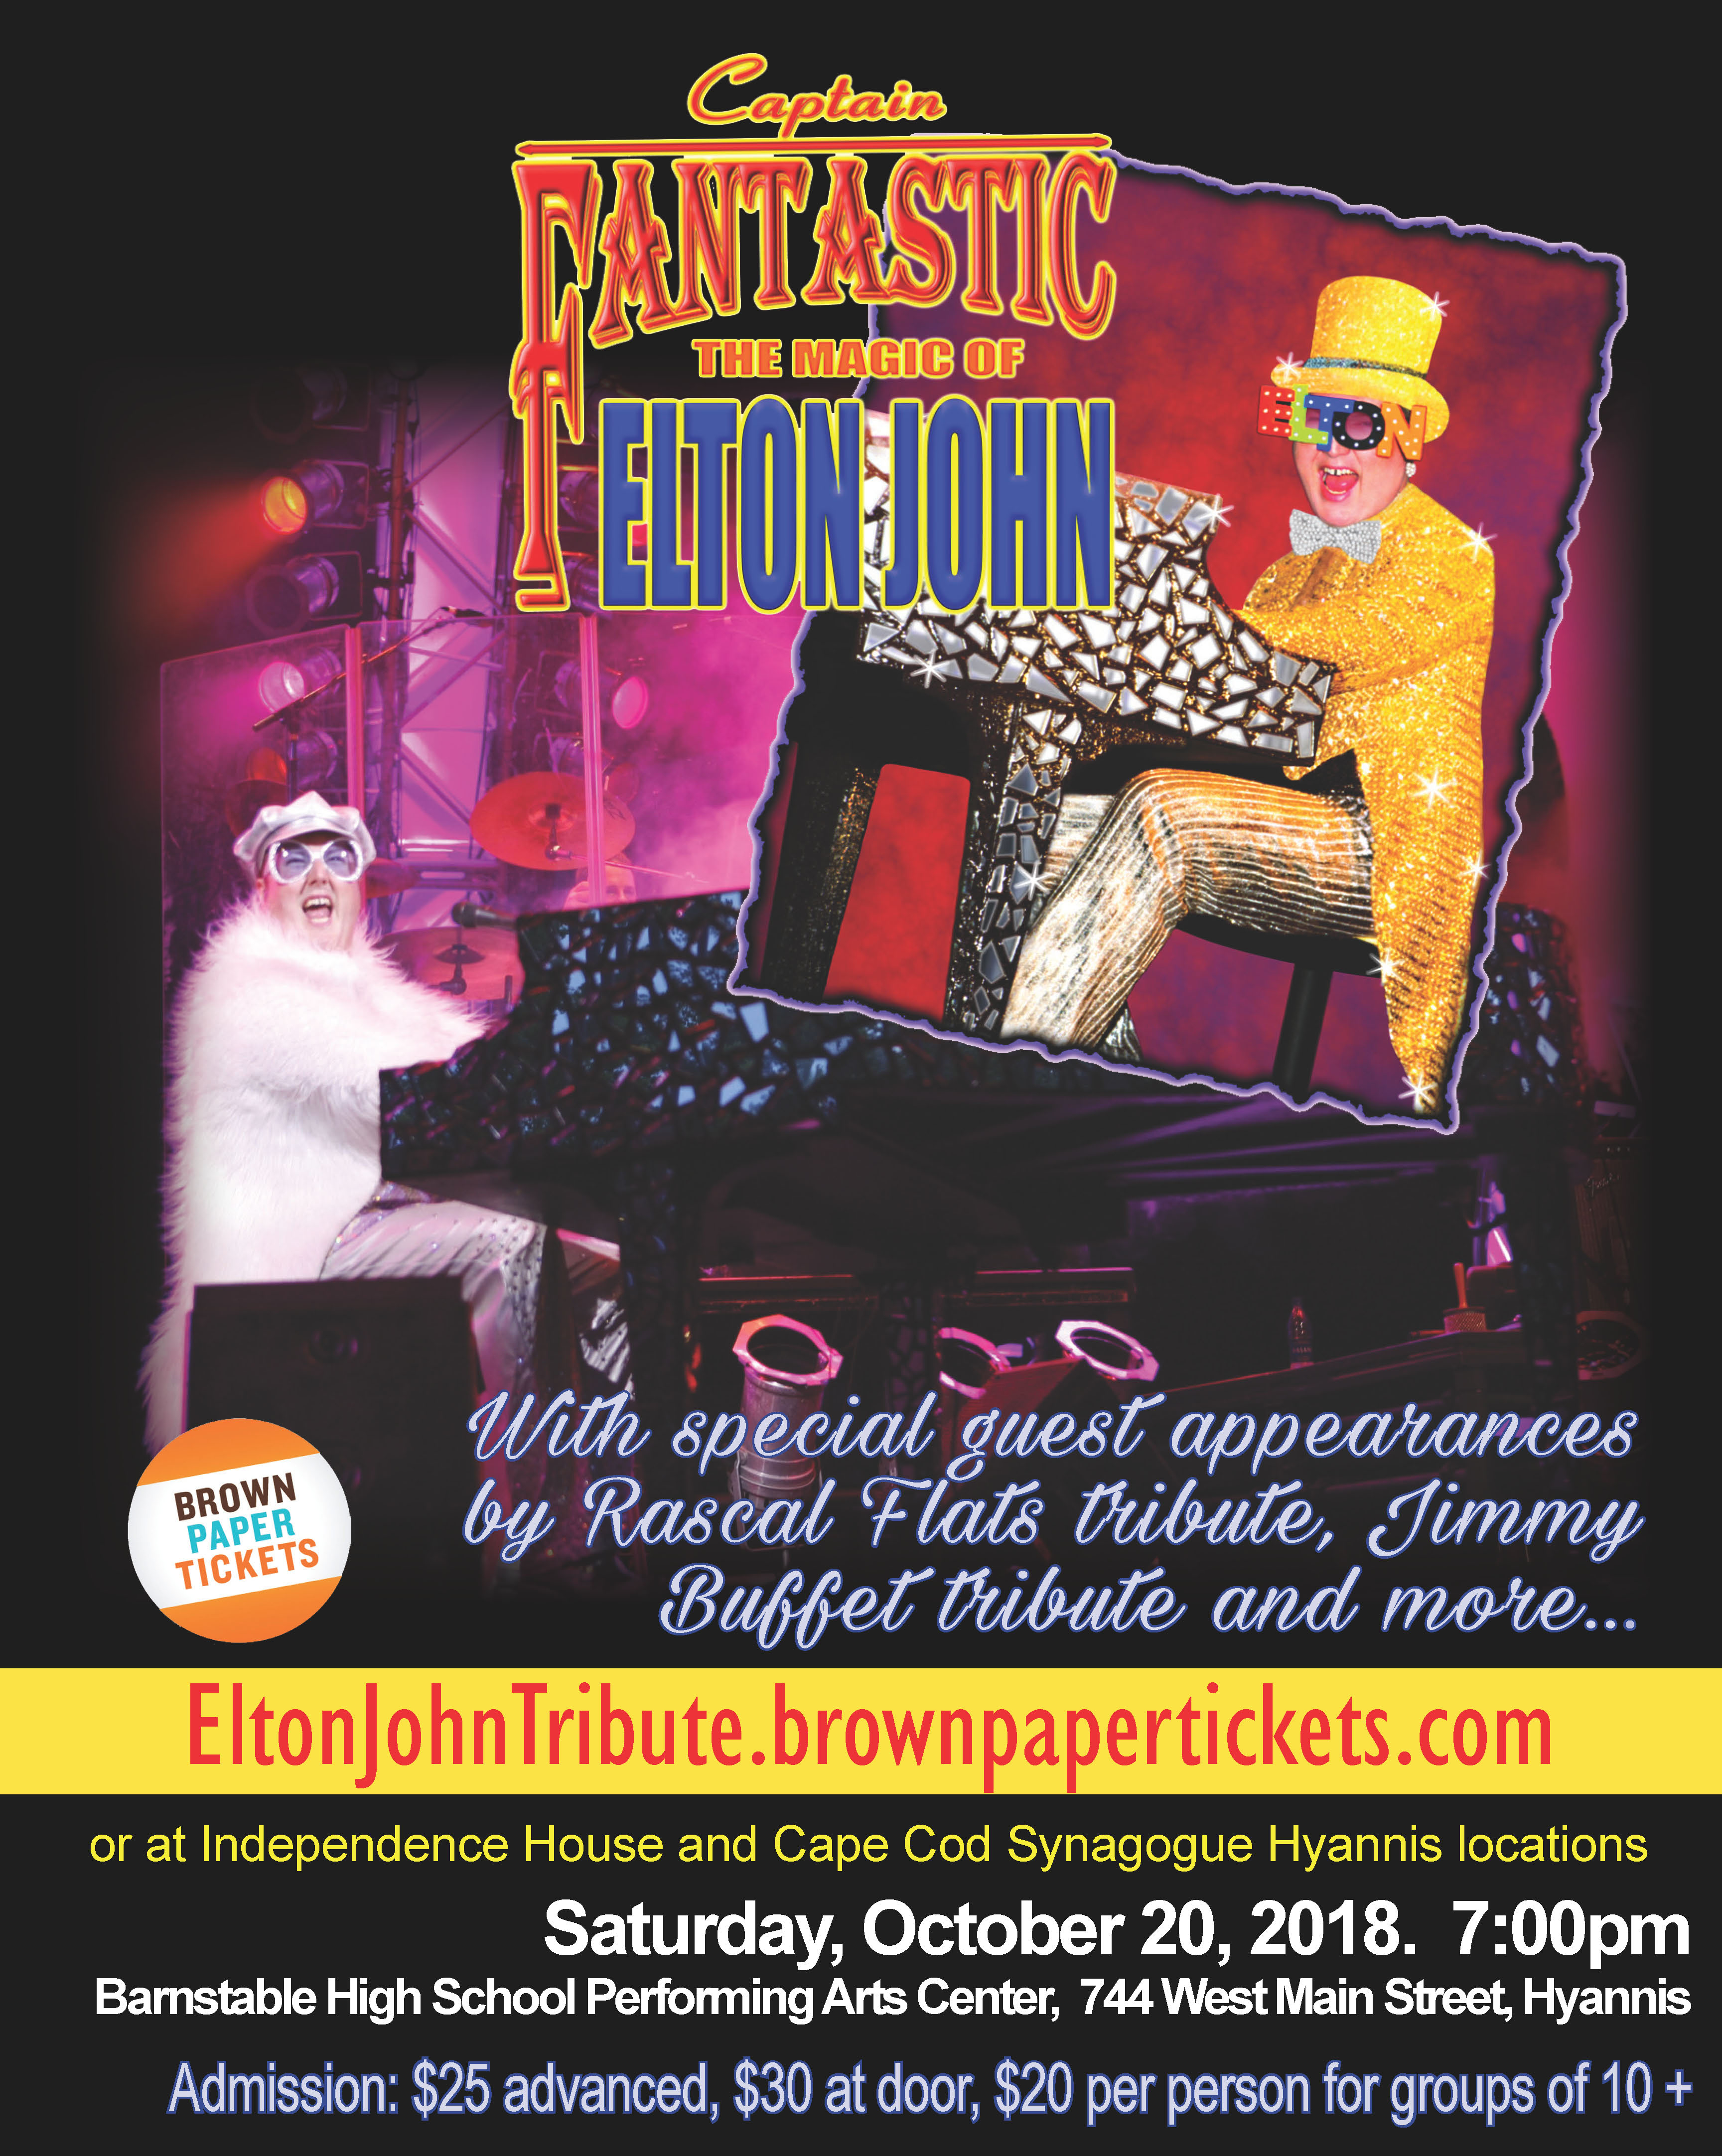 Captain Fantastic-Elton John Tribute Concert @ Barnstable Performing Arts Center